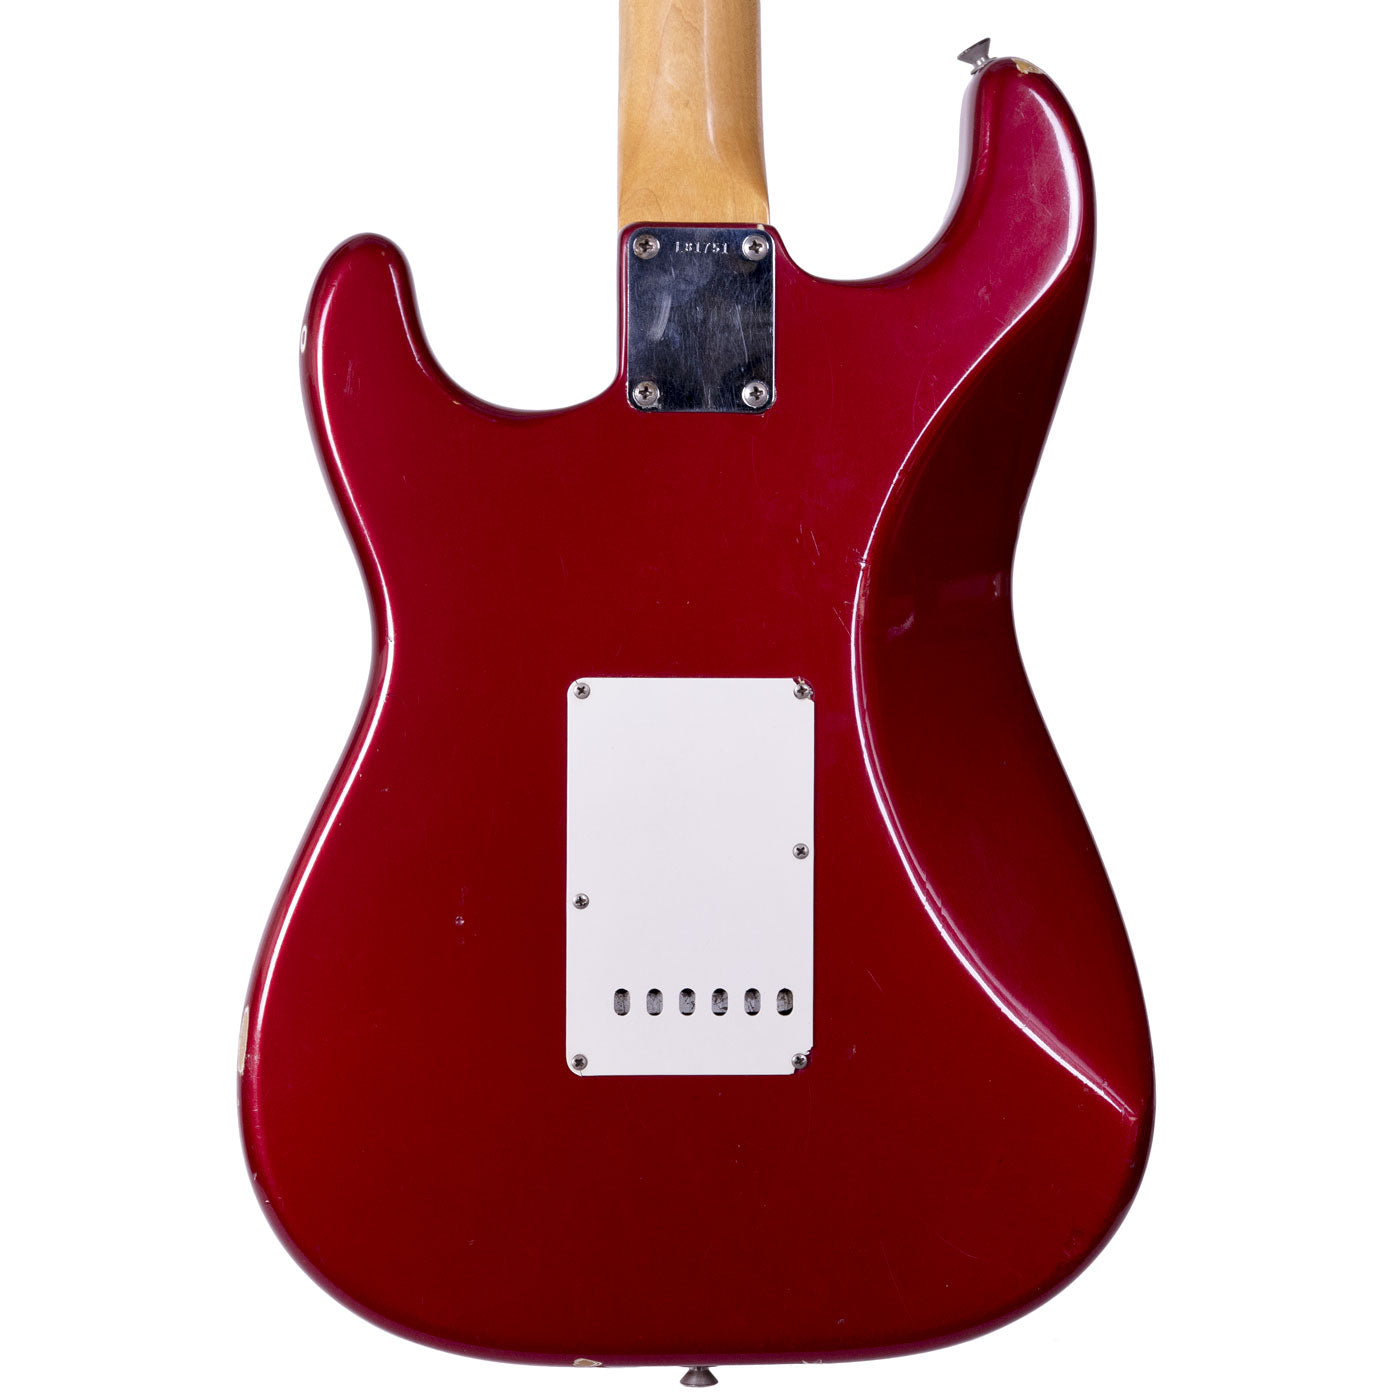 1965 Fender Stratocaster - Candy Apple Red